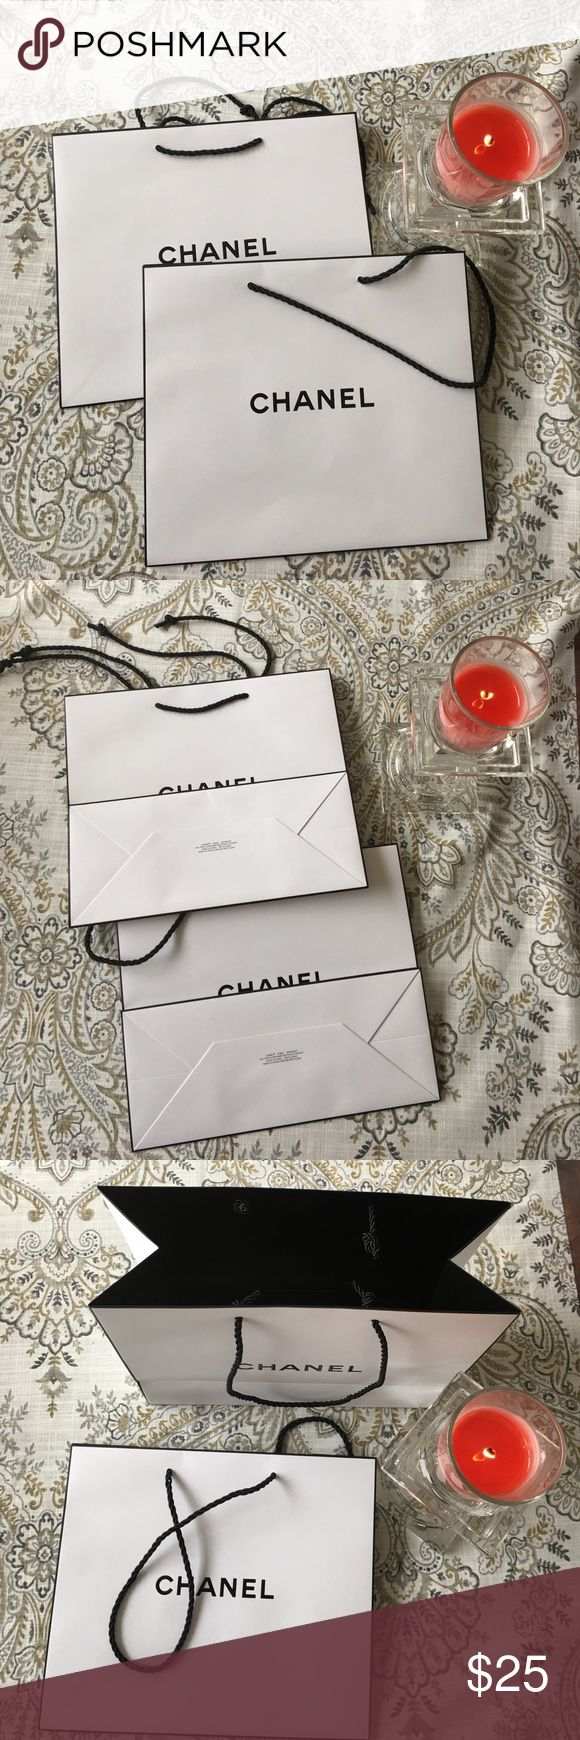 """CHANEL SHOPPING BAGS Selling a set of TWO CHANEL SHOPPING BAGS. Approximate bags size.  9"""" x 10.5"""" x 4.5"""".  Please use the offer feature! CHANEL Bags Totes"""